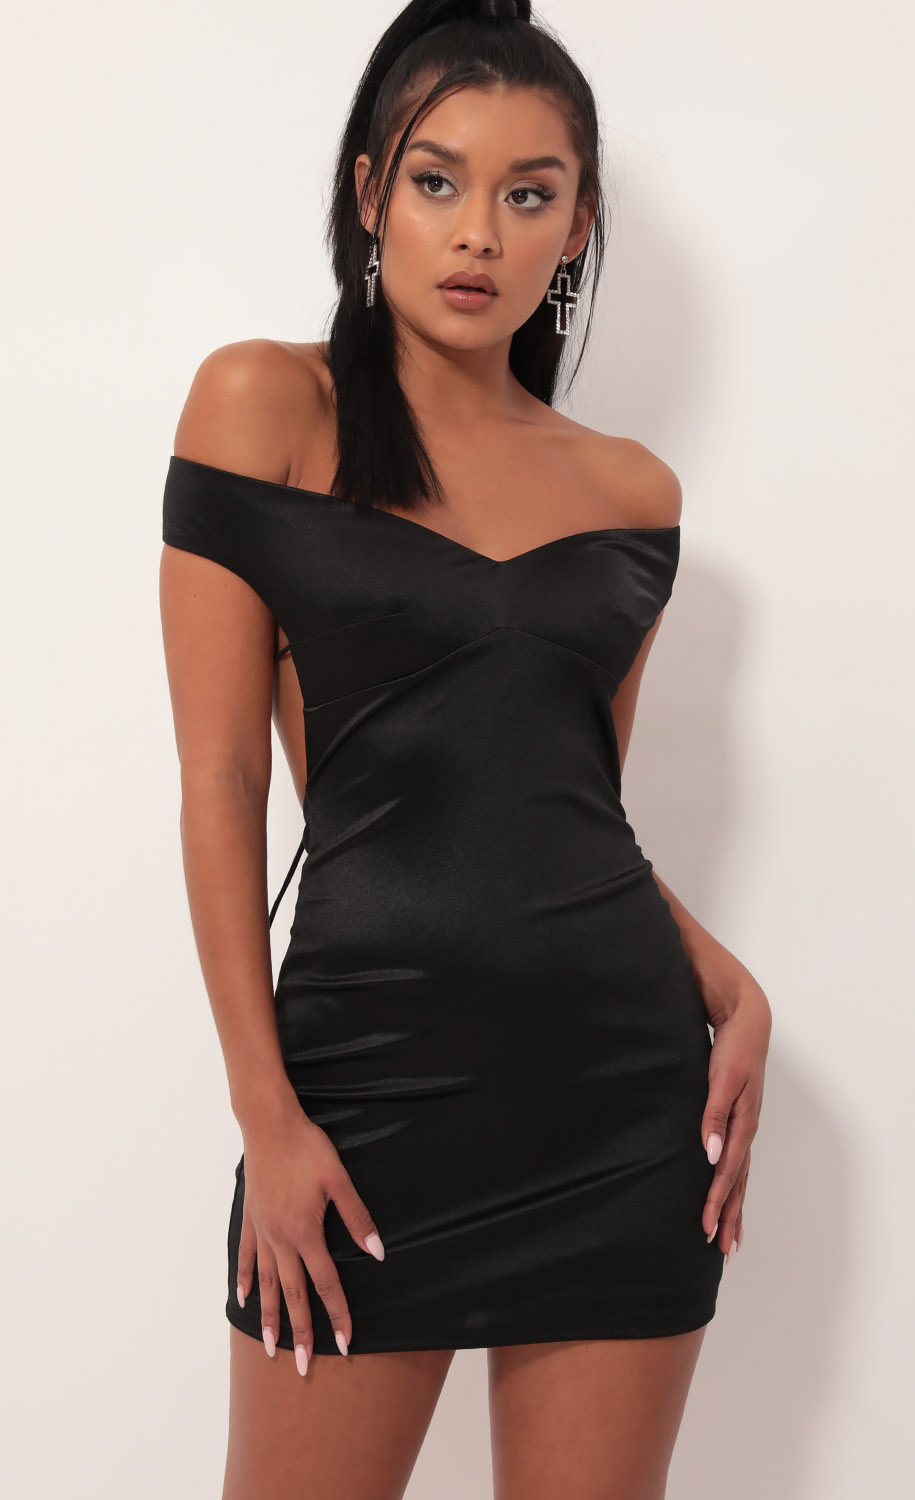 Dianna Satin Luxe Dress in Black